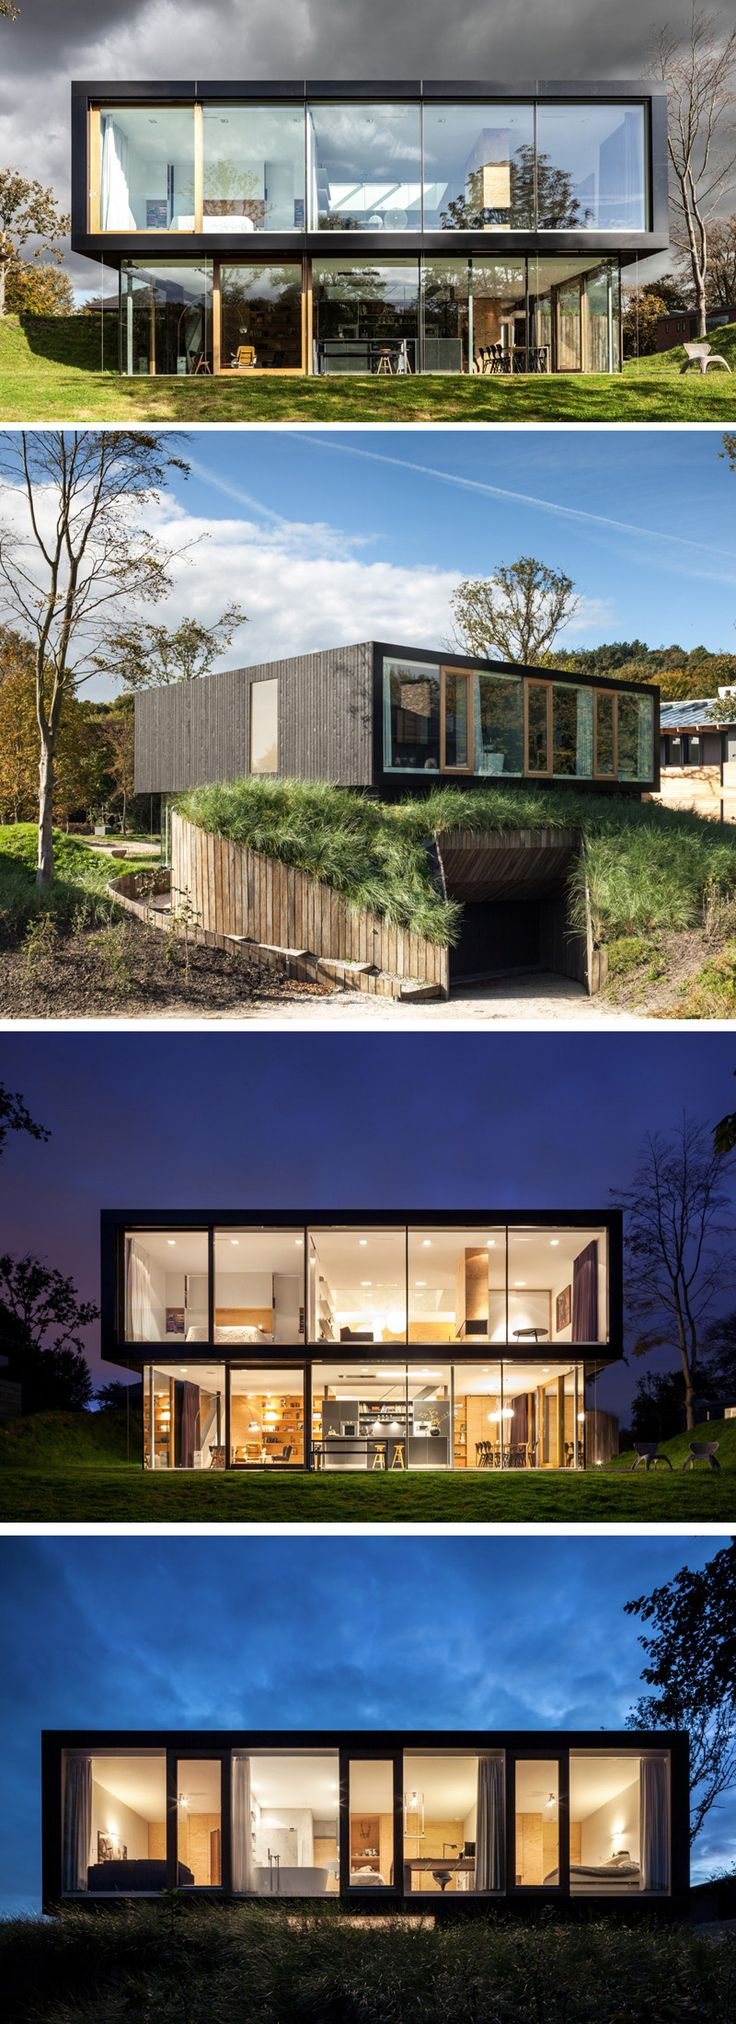 Dutch architects design a new house around a preserved dune landscape  http://www.amazon.ca/dp/B00YJUT56W